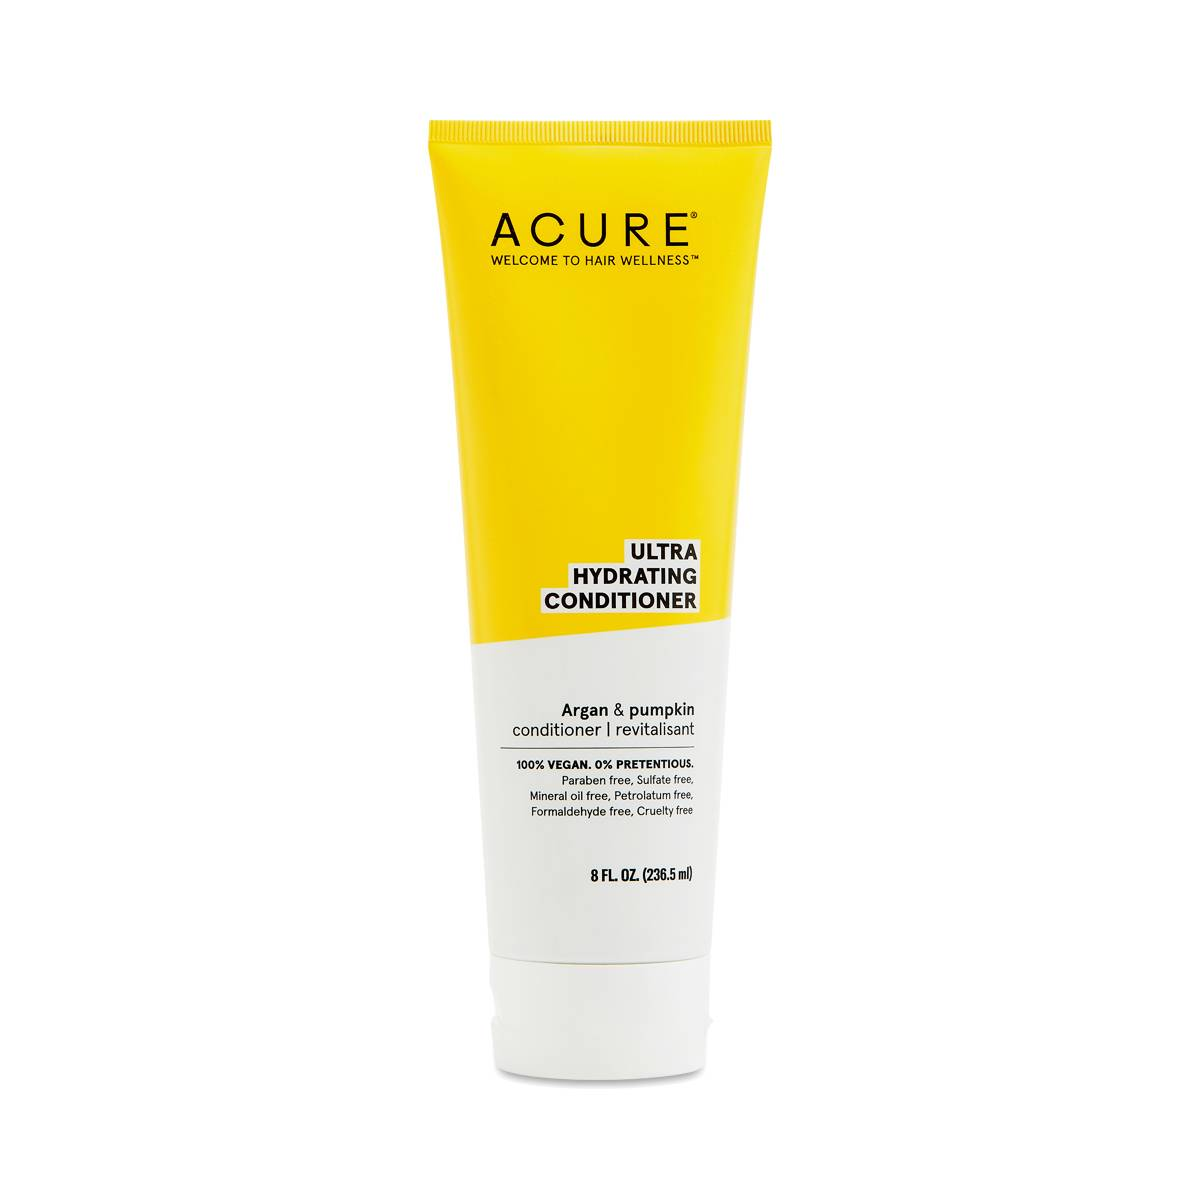 ACURE Ultra Hydrating Conditioner, Argan & Pumpkin